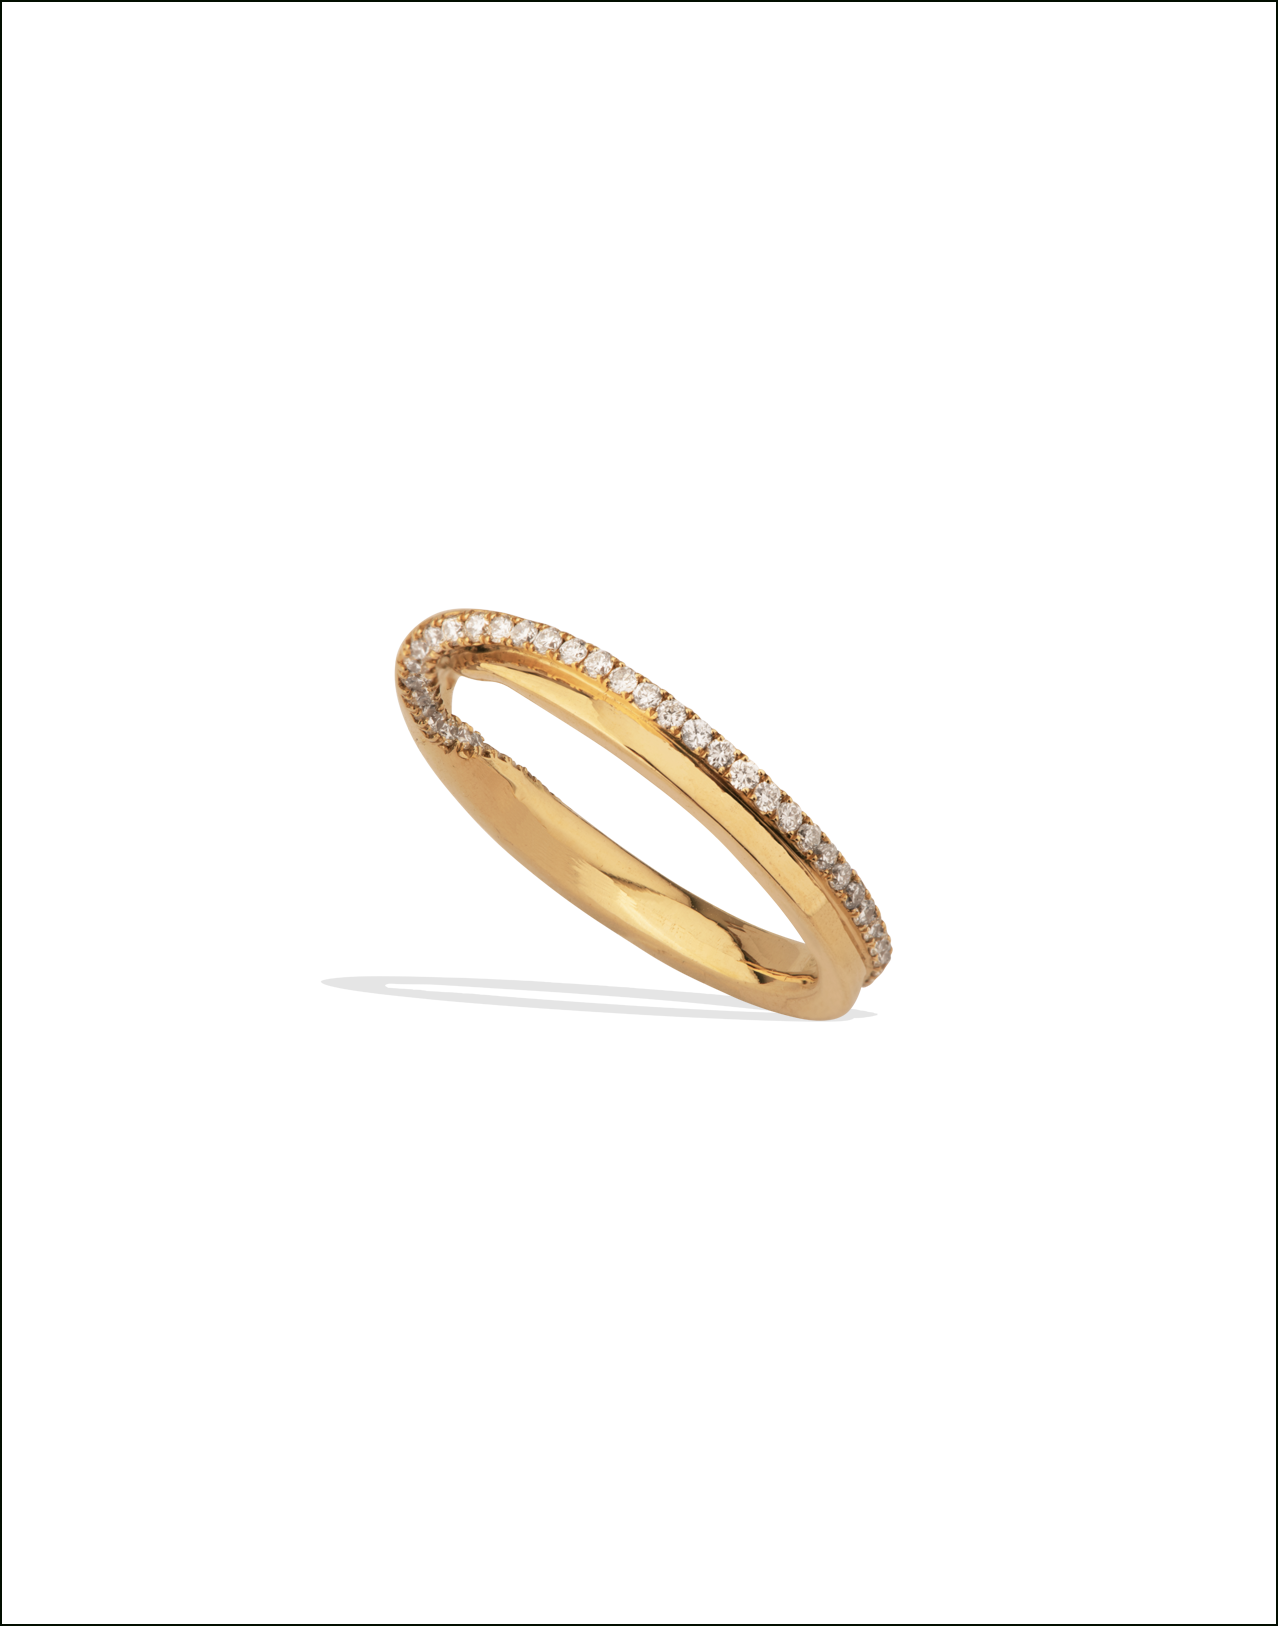 Completedworks-Wedding-Band-Doublement-Gold-Ring-1-1.png